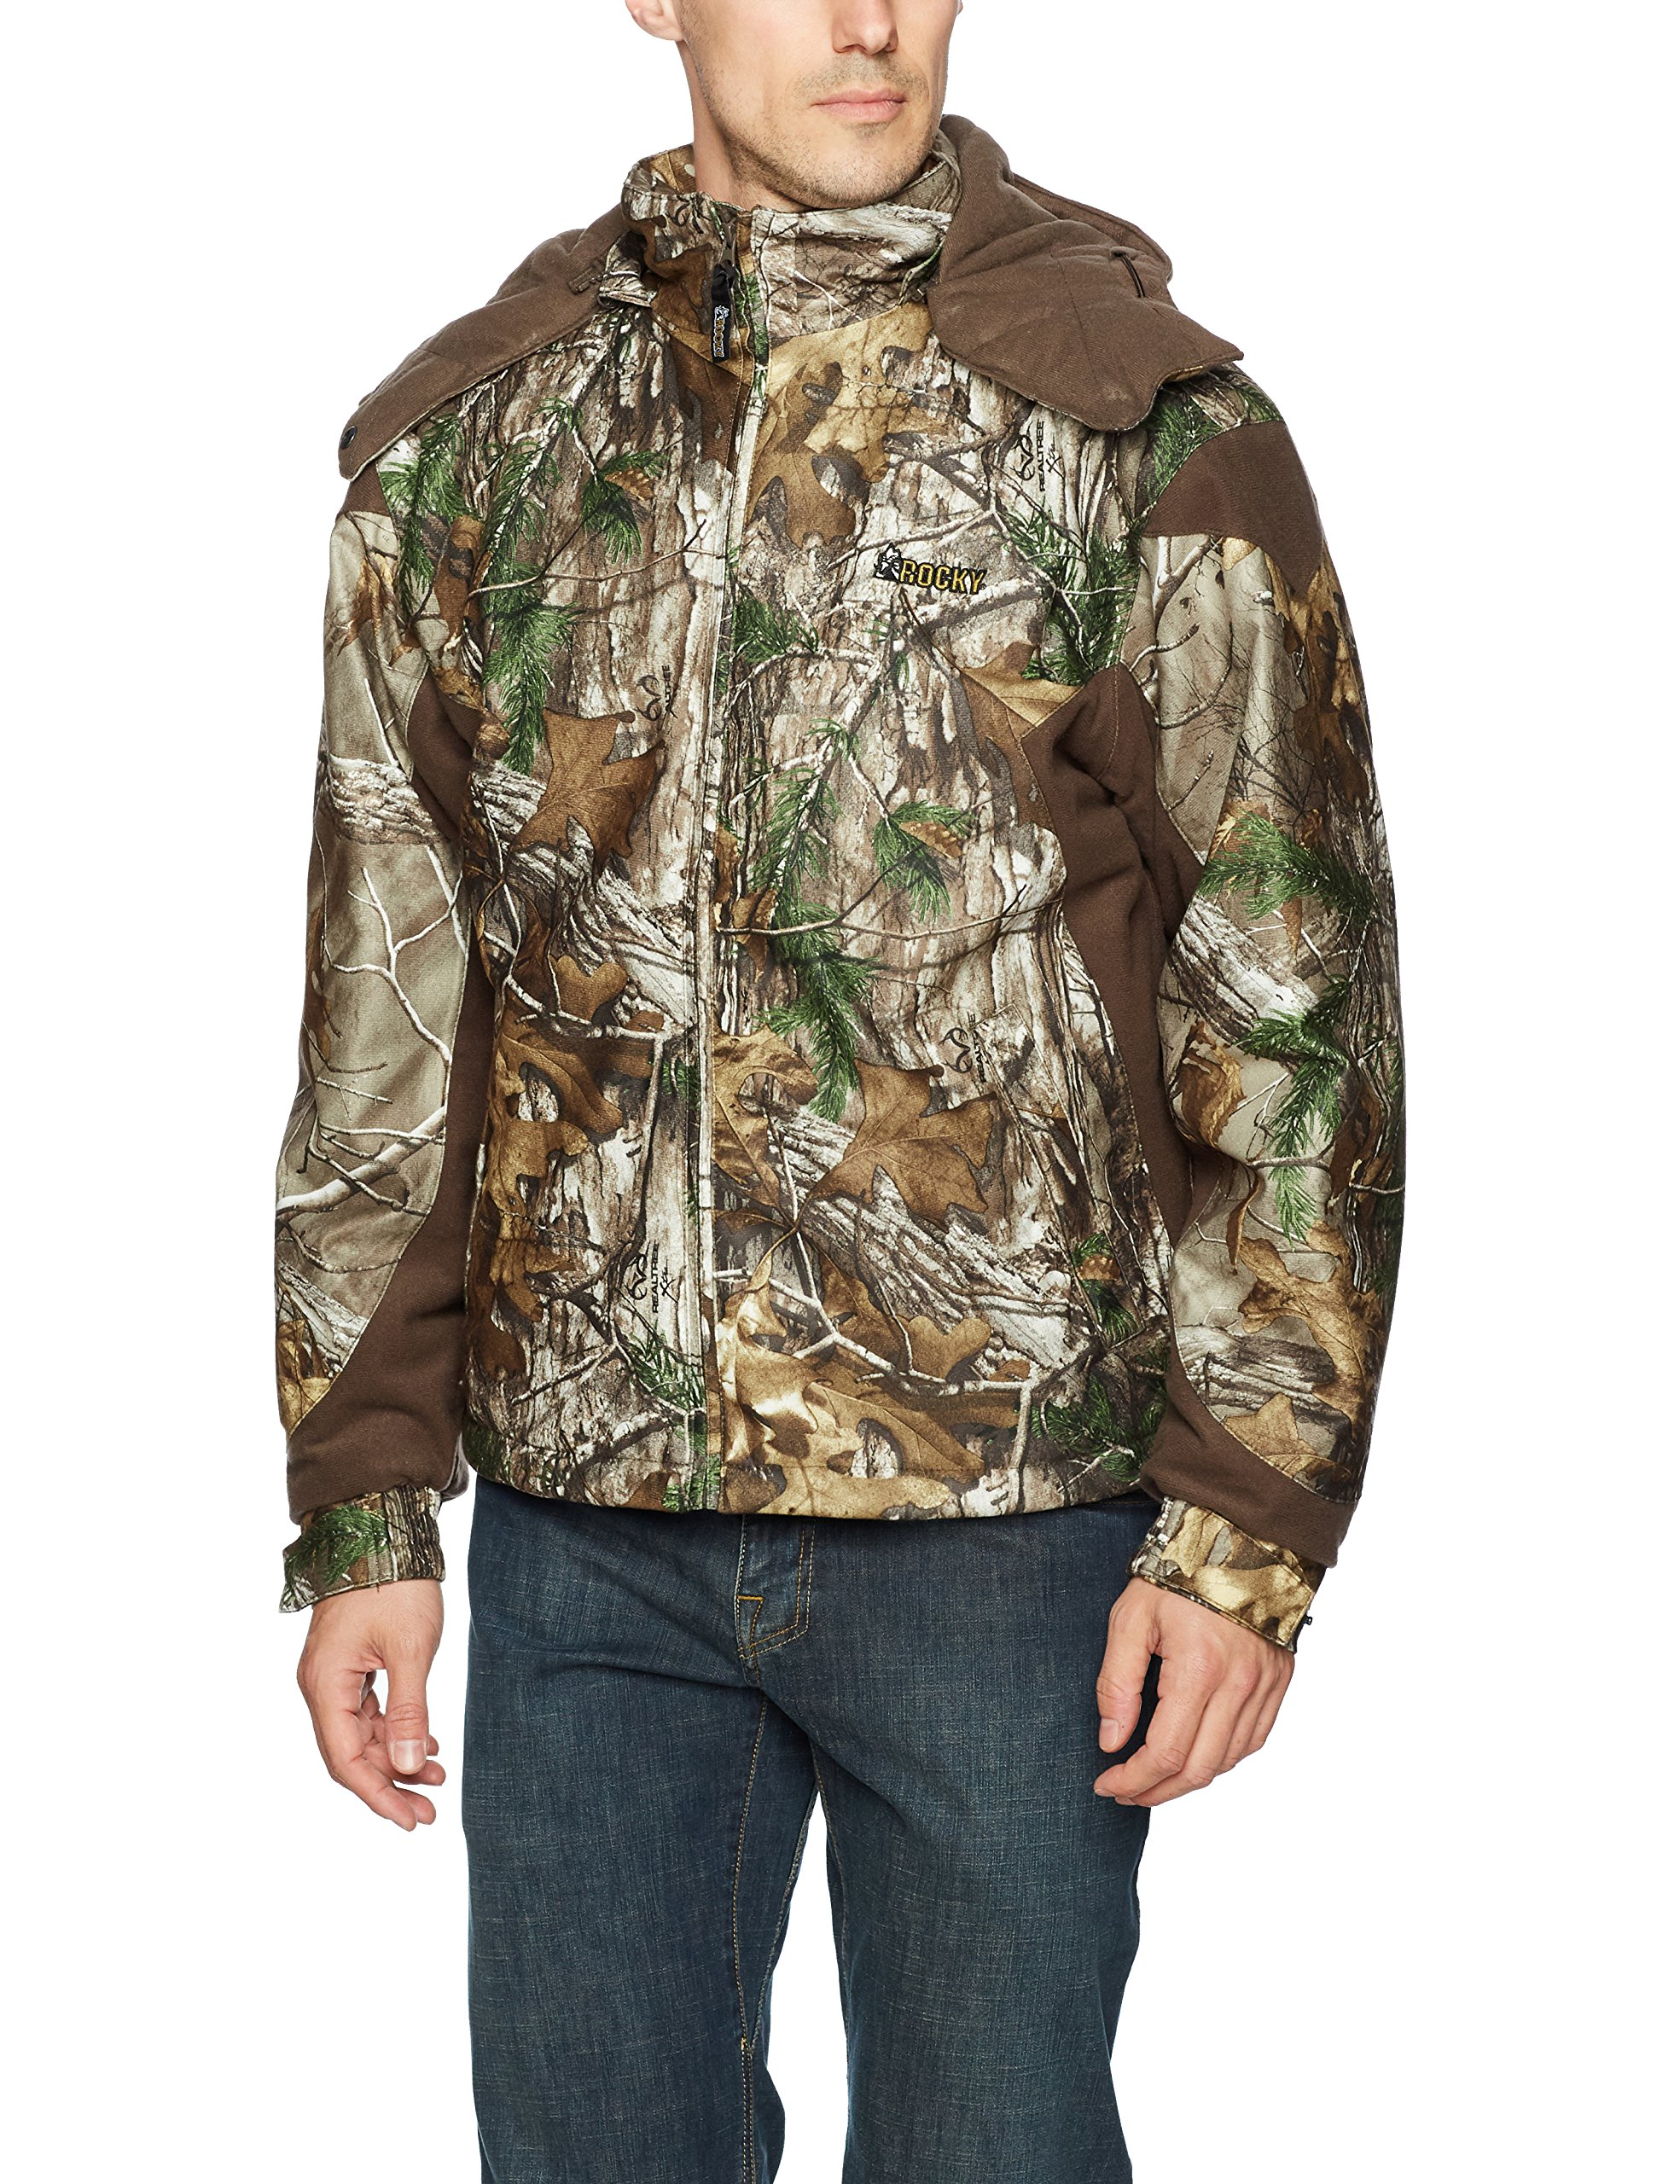 Rocky Men's Prohunter Insulated Parka Jacket, Realtree Extra Camouflage, XX-Large by Rocky